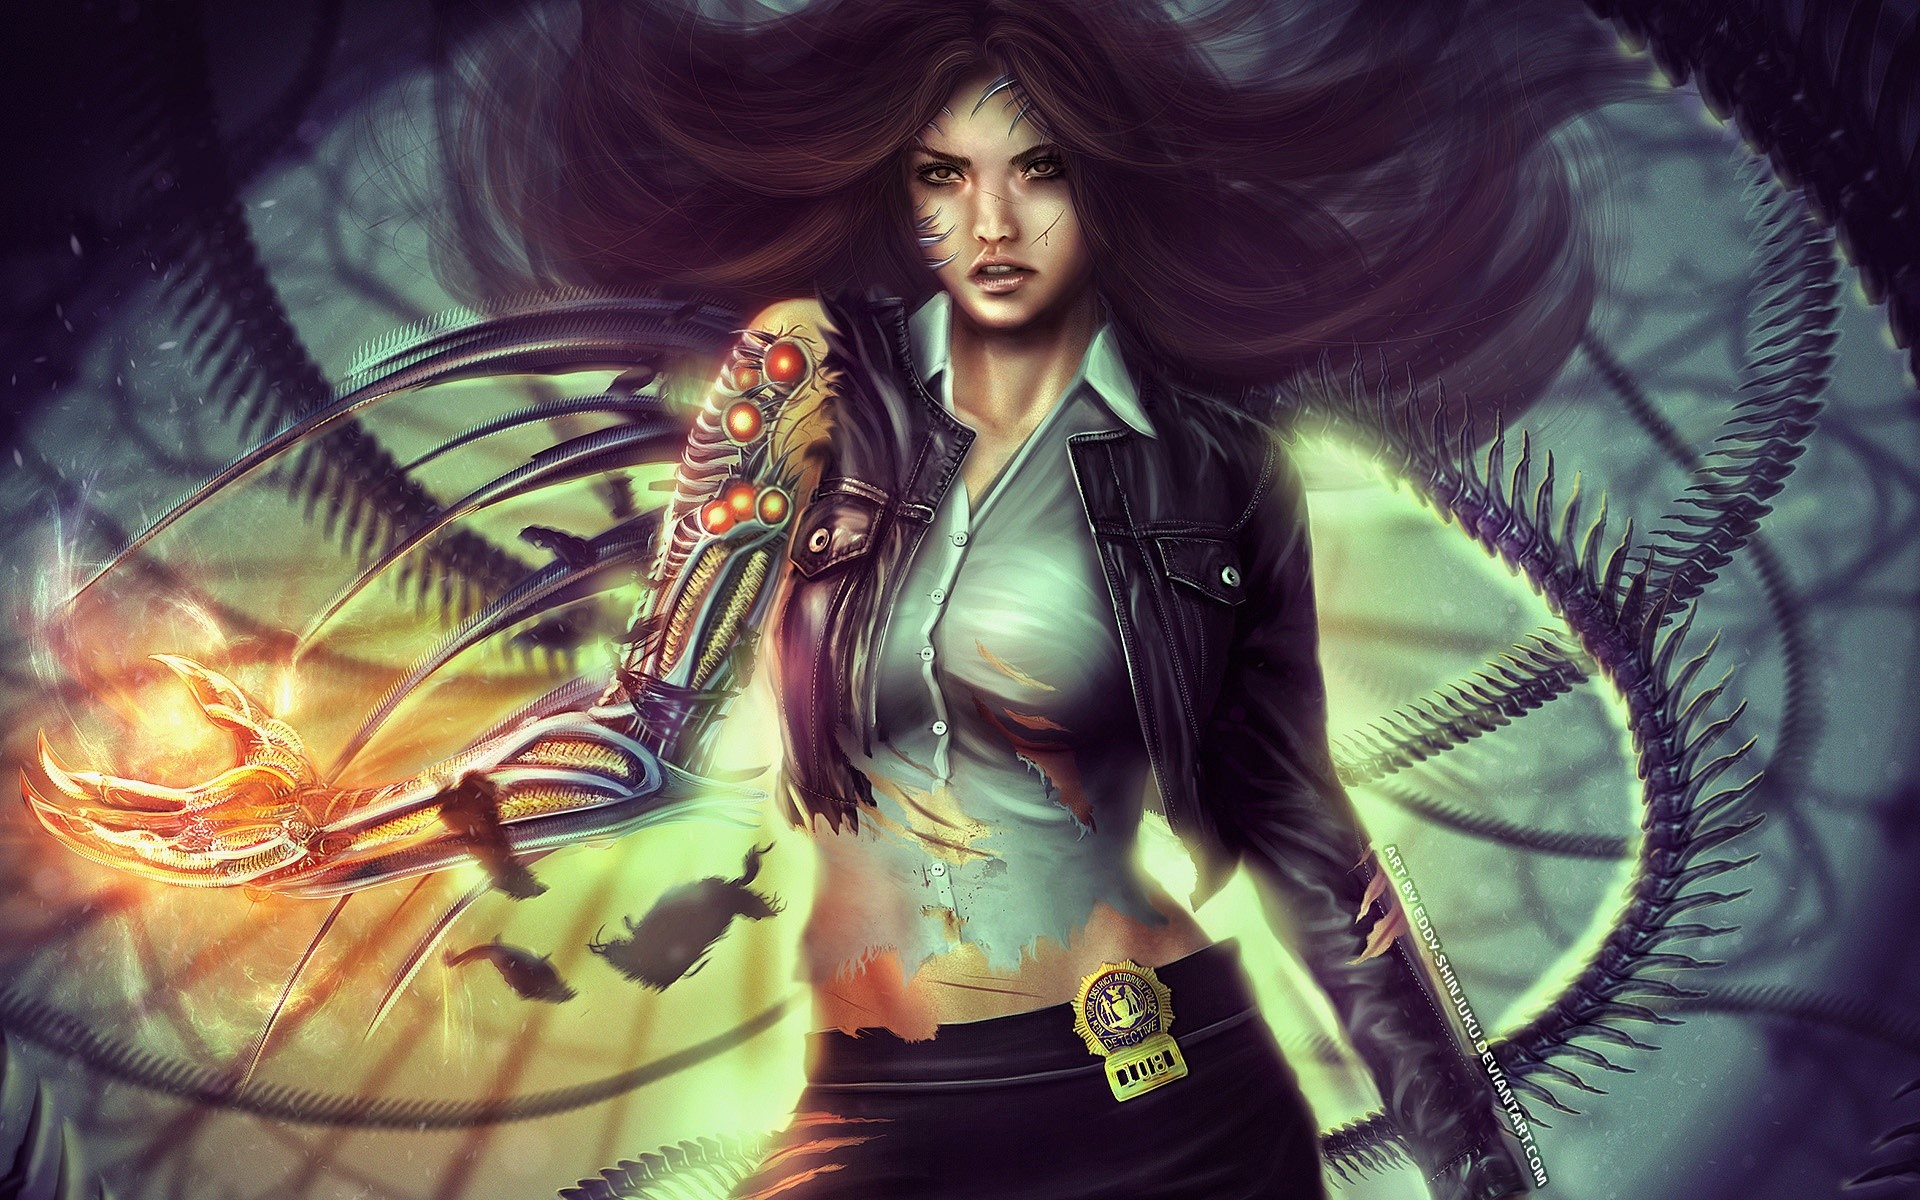 Wallpaper Sara Pezzini Witchblade Images